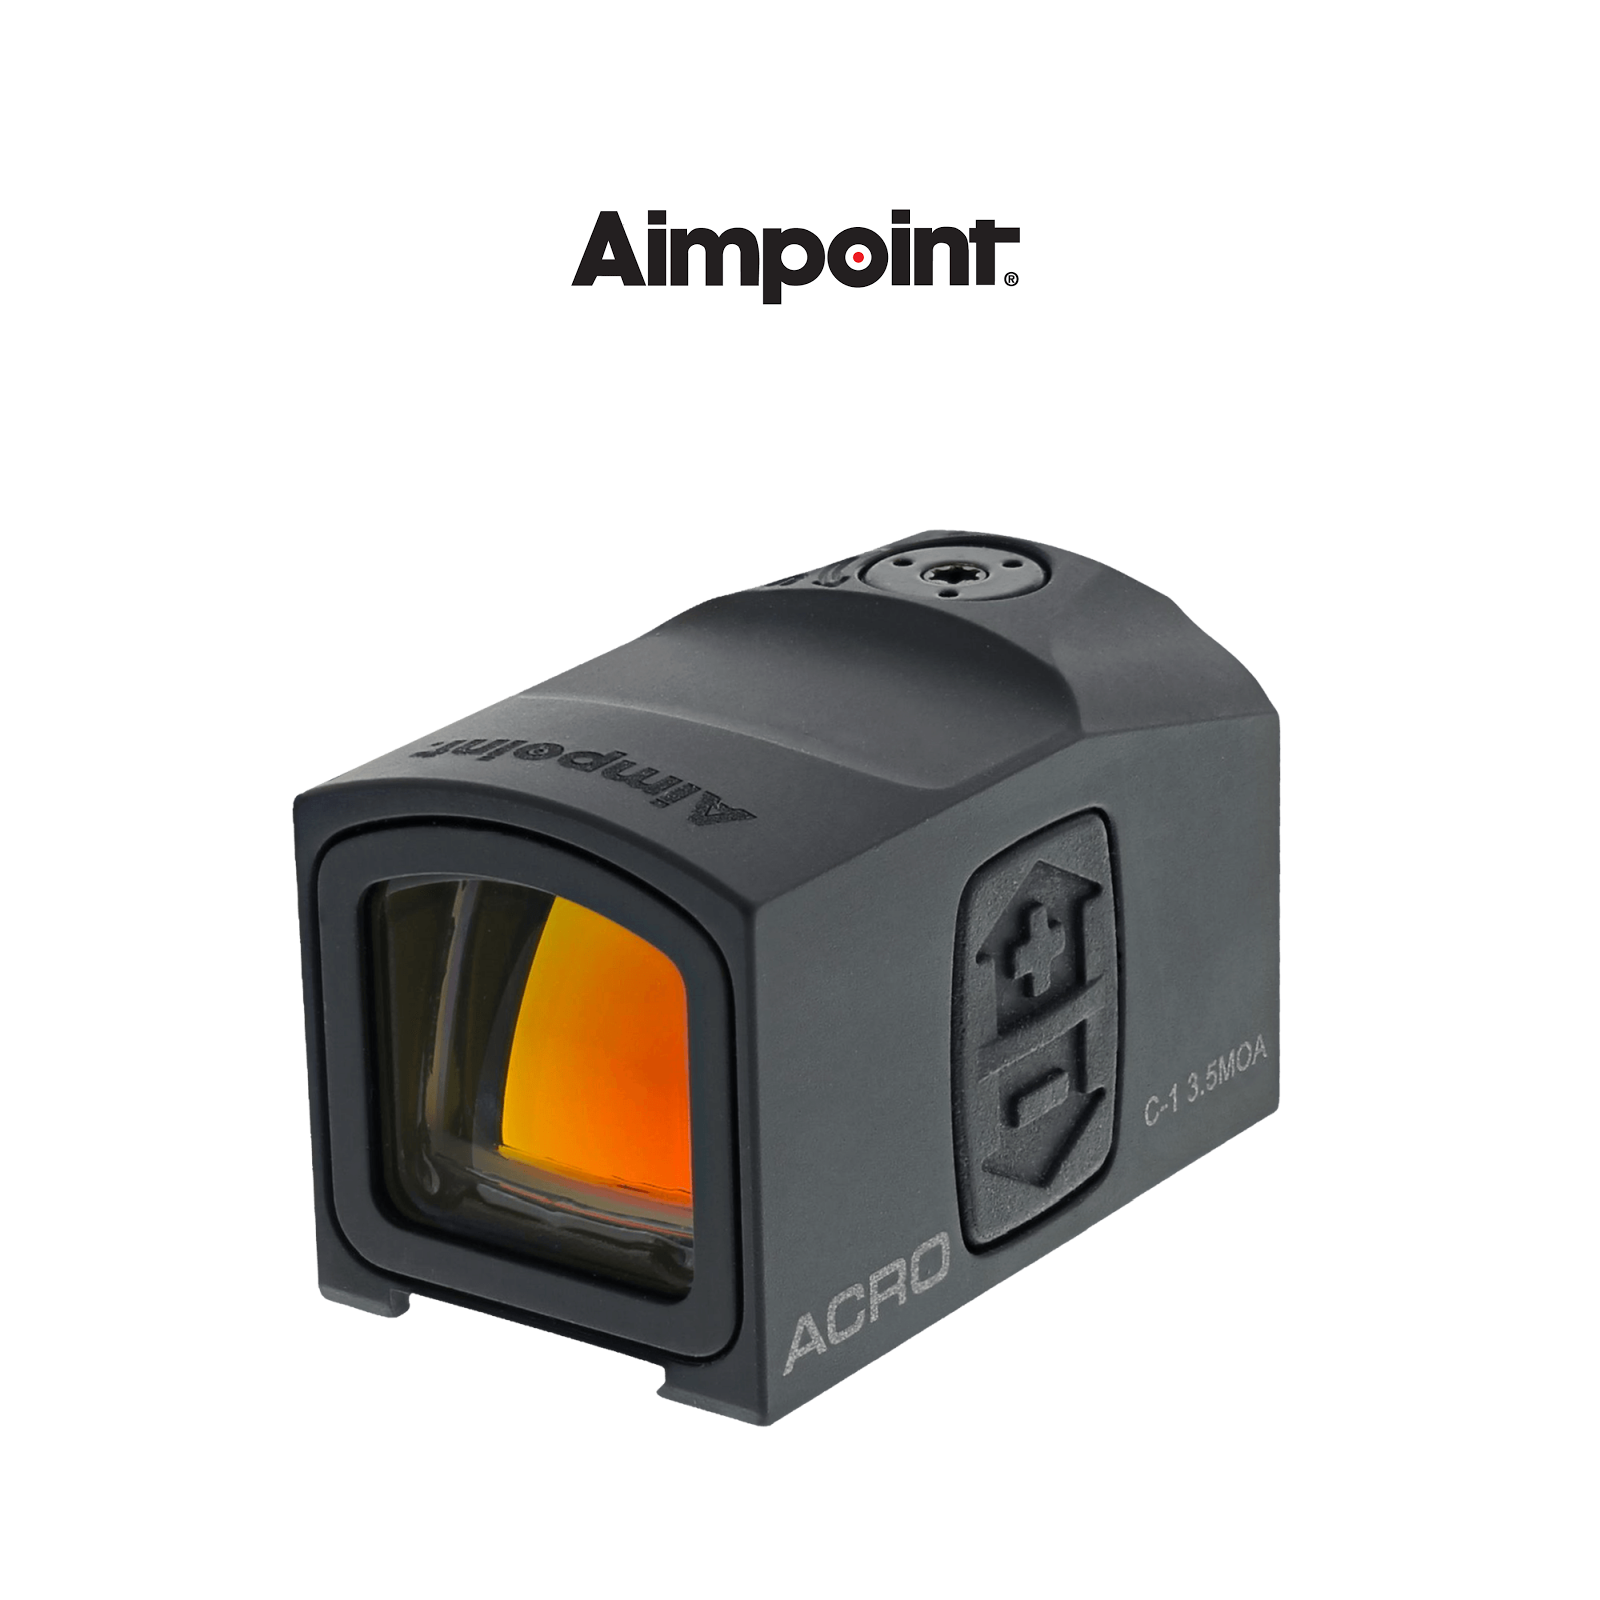 Aimpoint AIMPOINT  ACRO C-1